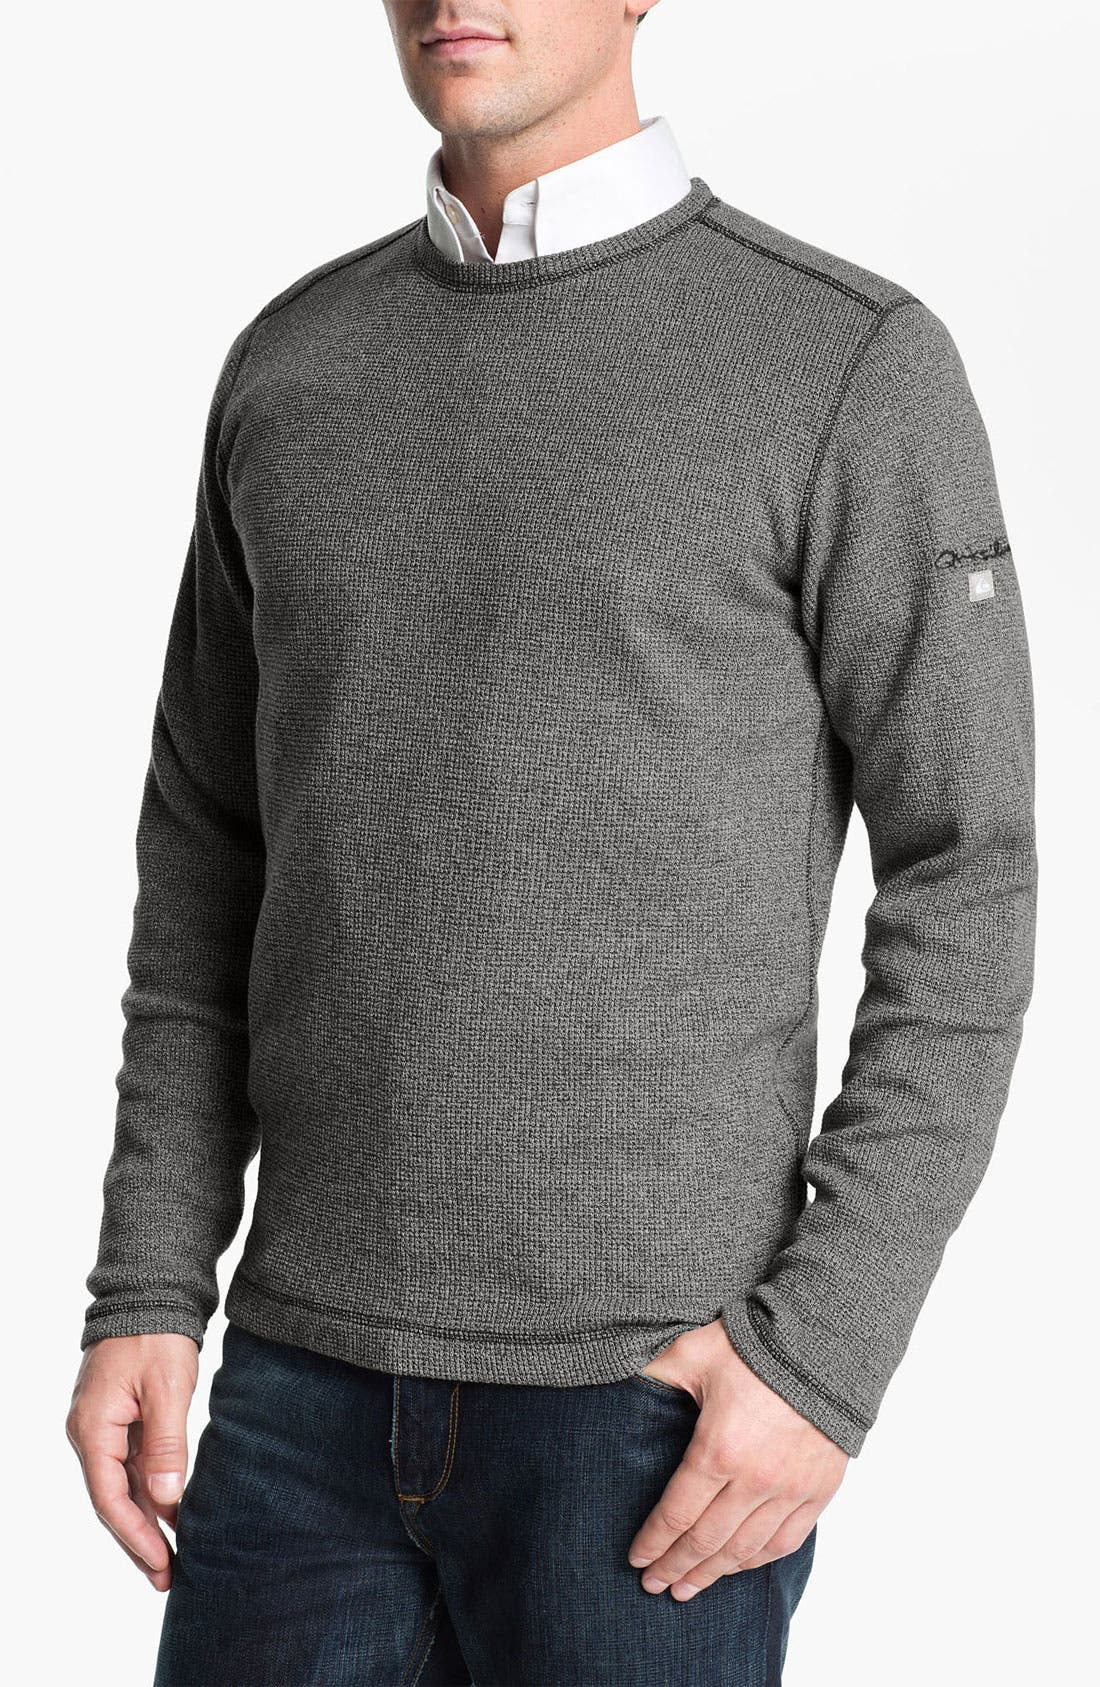 Main Image - Quiksilver Waterman Collection Cotton Crewneck Sweater